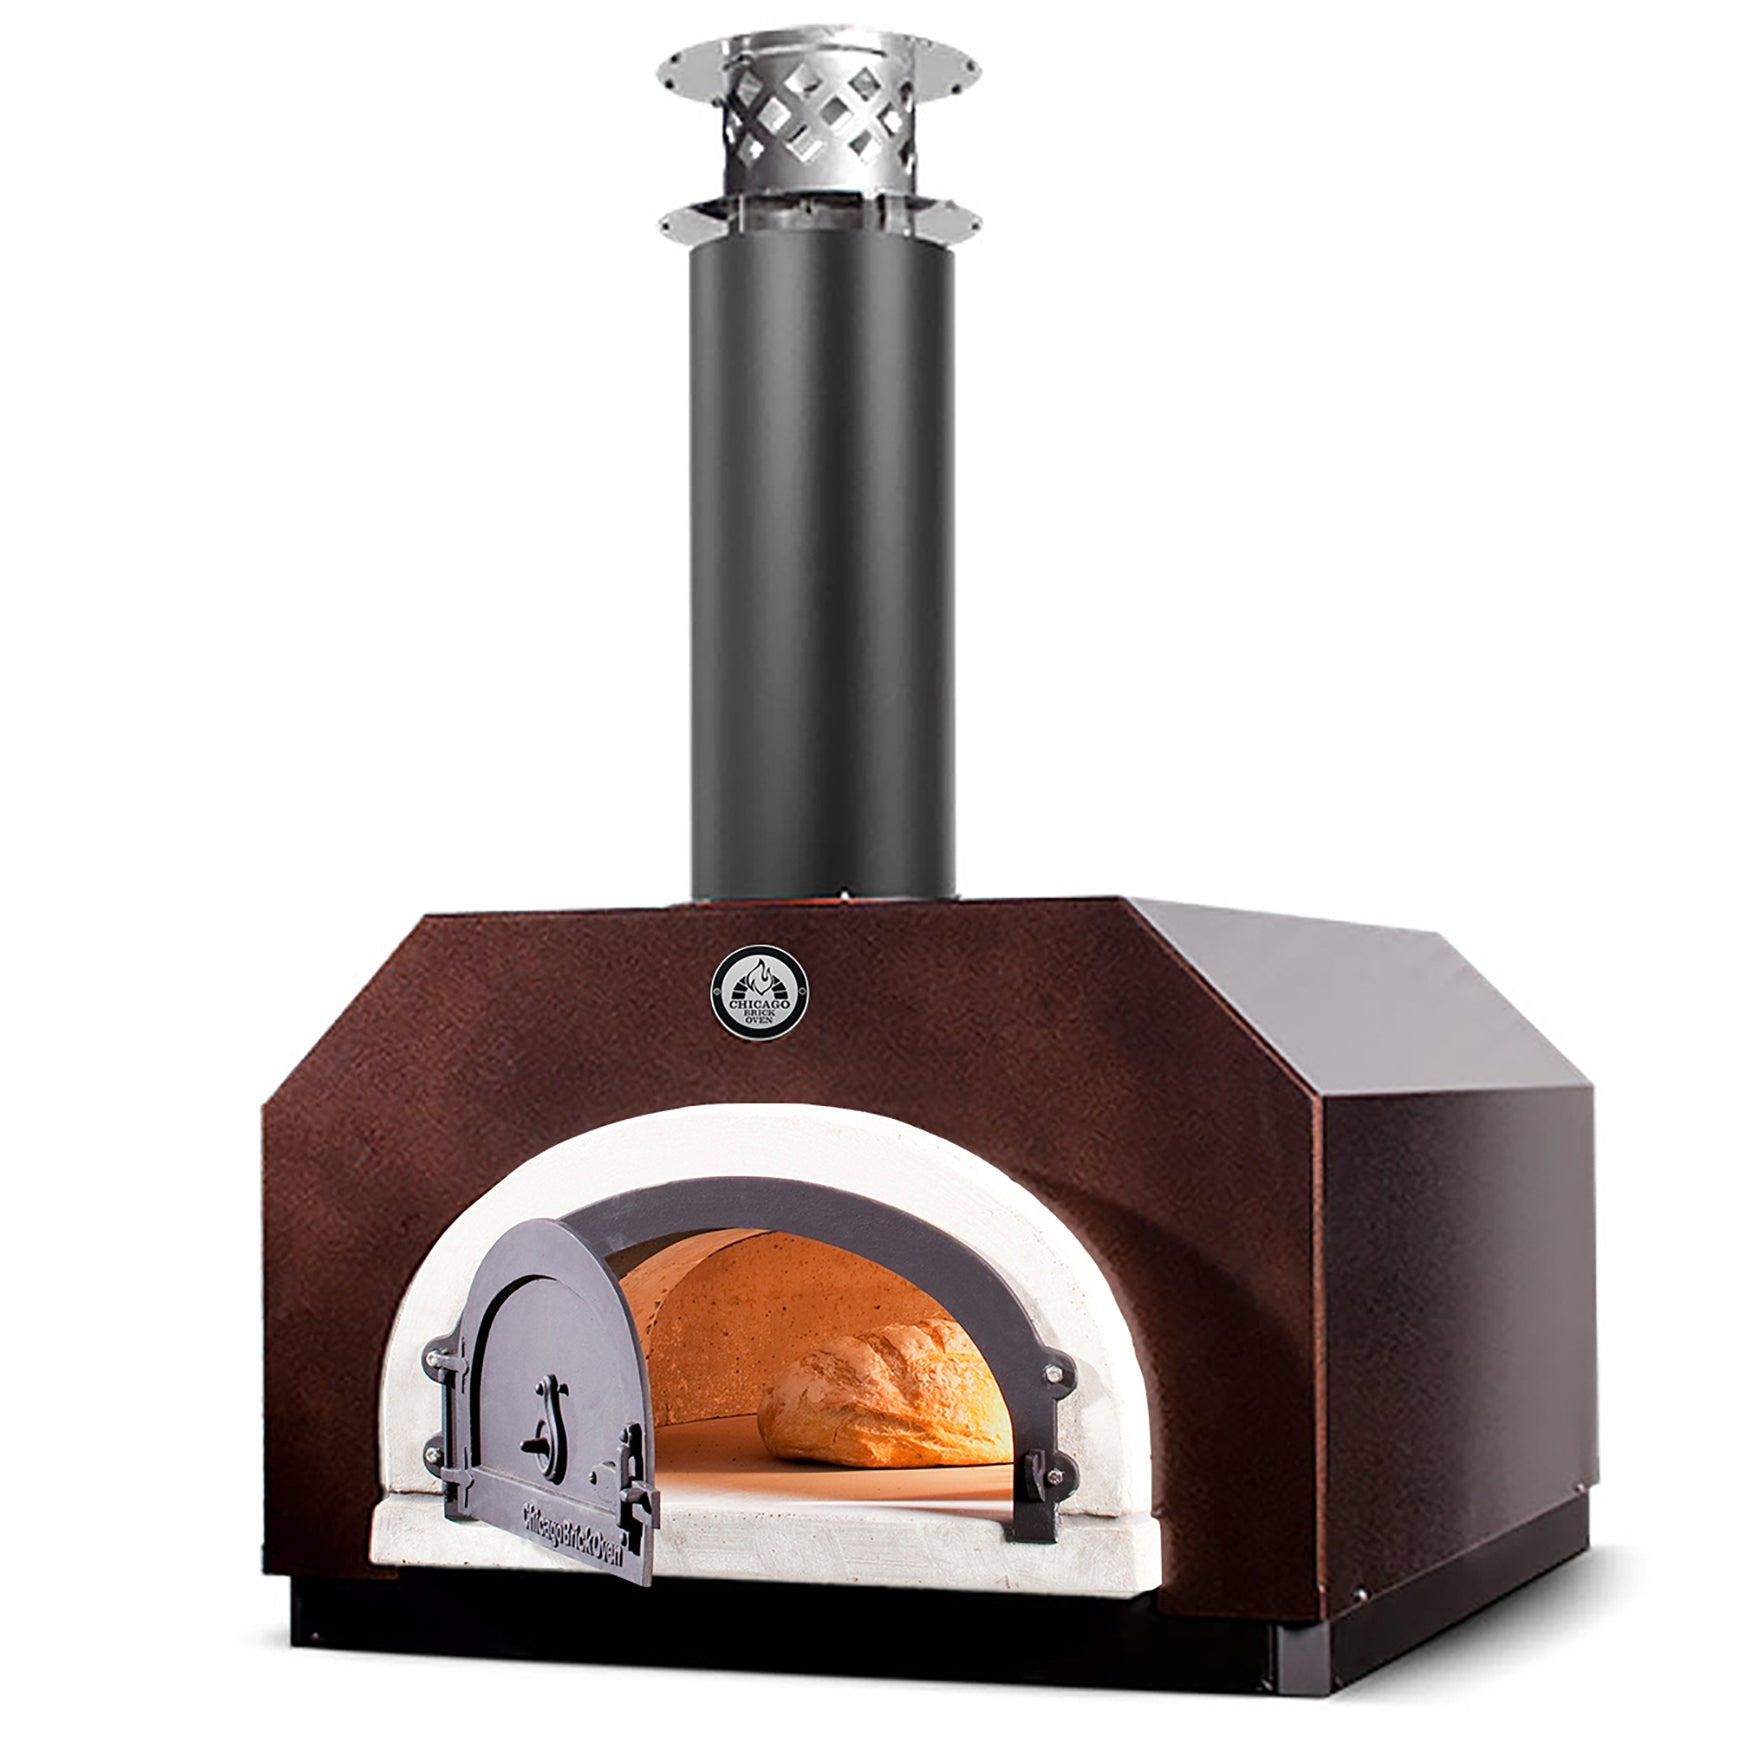 Entertainers Choice Cbo 750 Countertop Pizza Oven Chicago Brick Oven